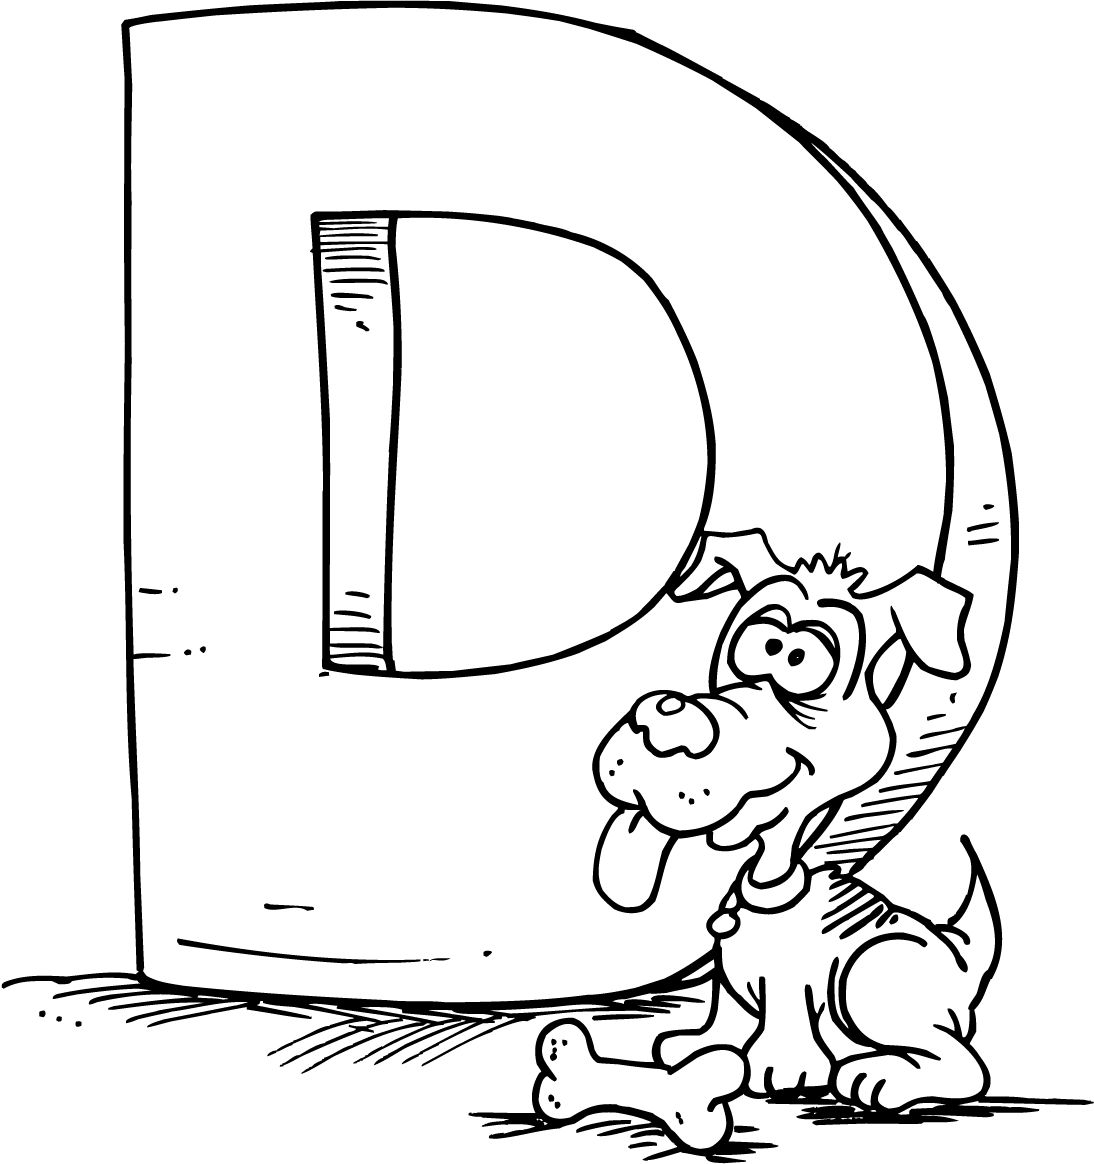 colouring page of a cartoon letter d with a dog | school - pk - k